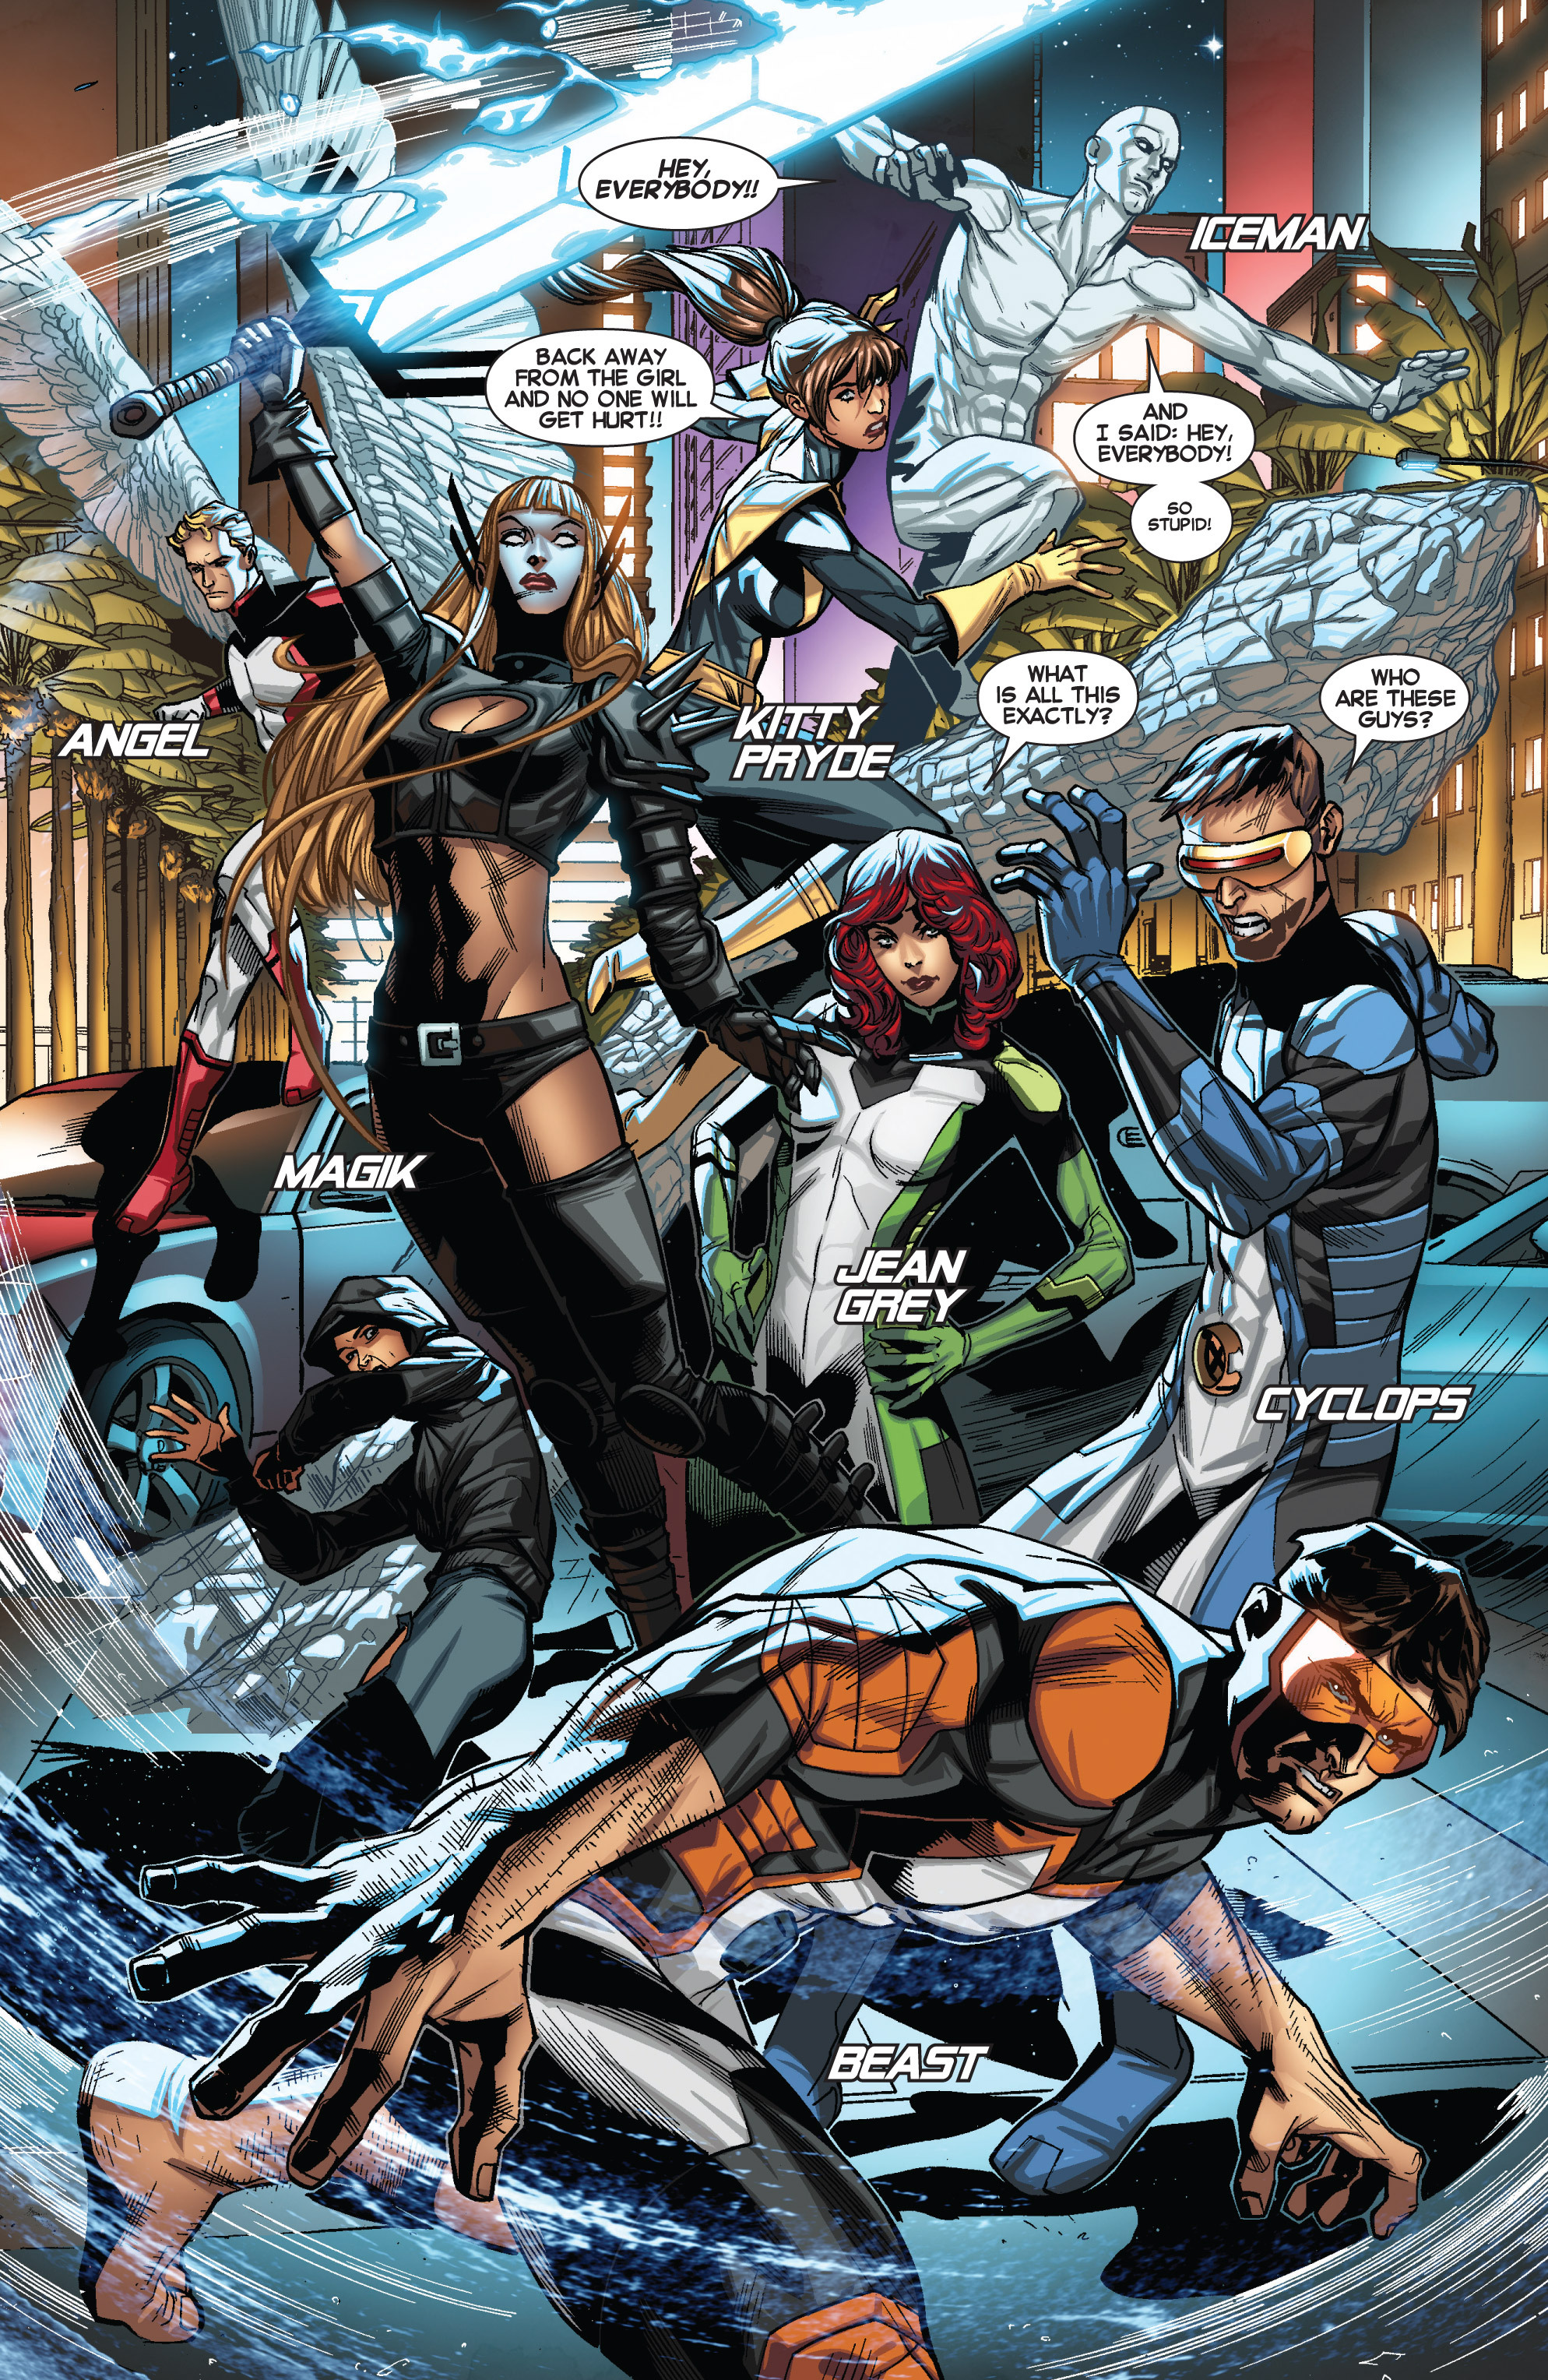 Read online All-New X-Men (2013) comic -  Issue # _Special - All-Different - 25